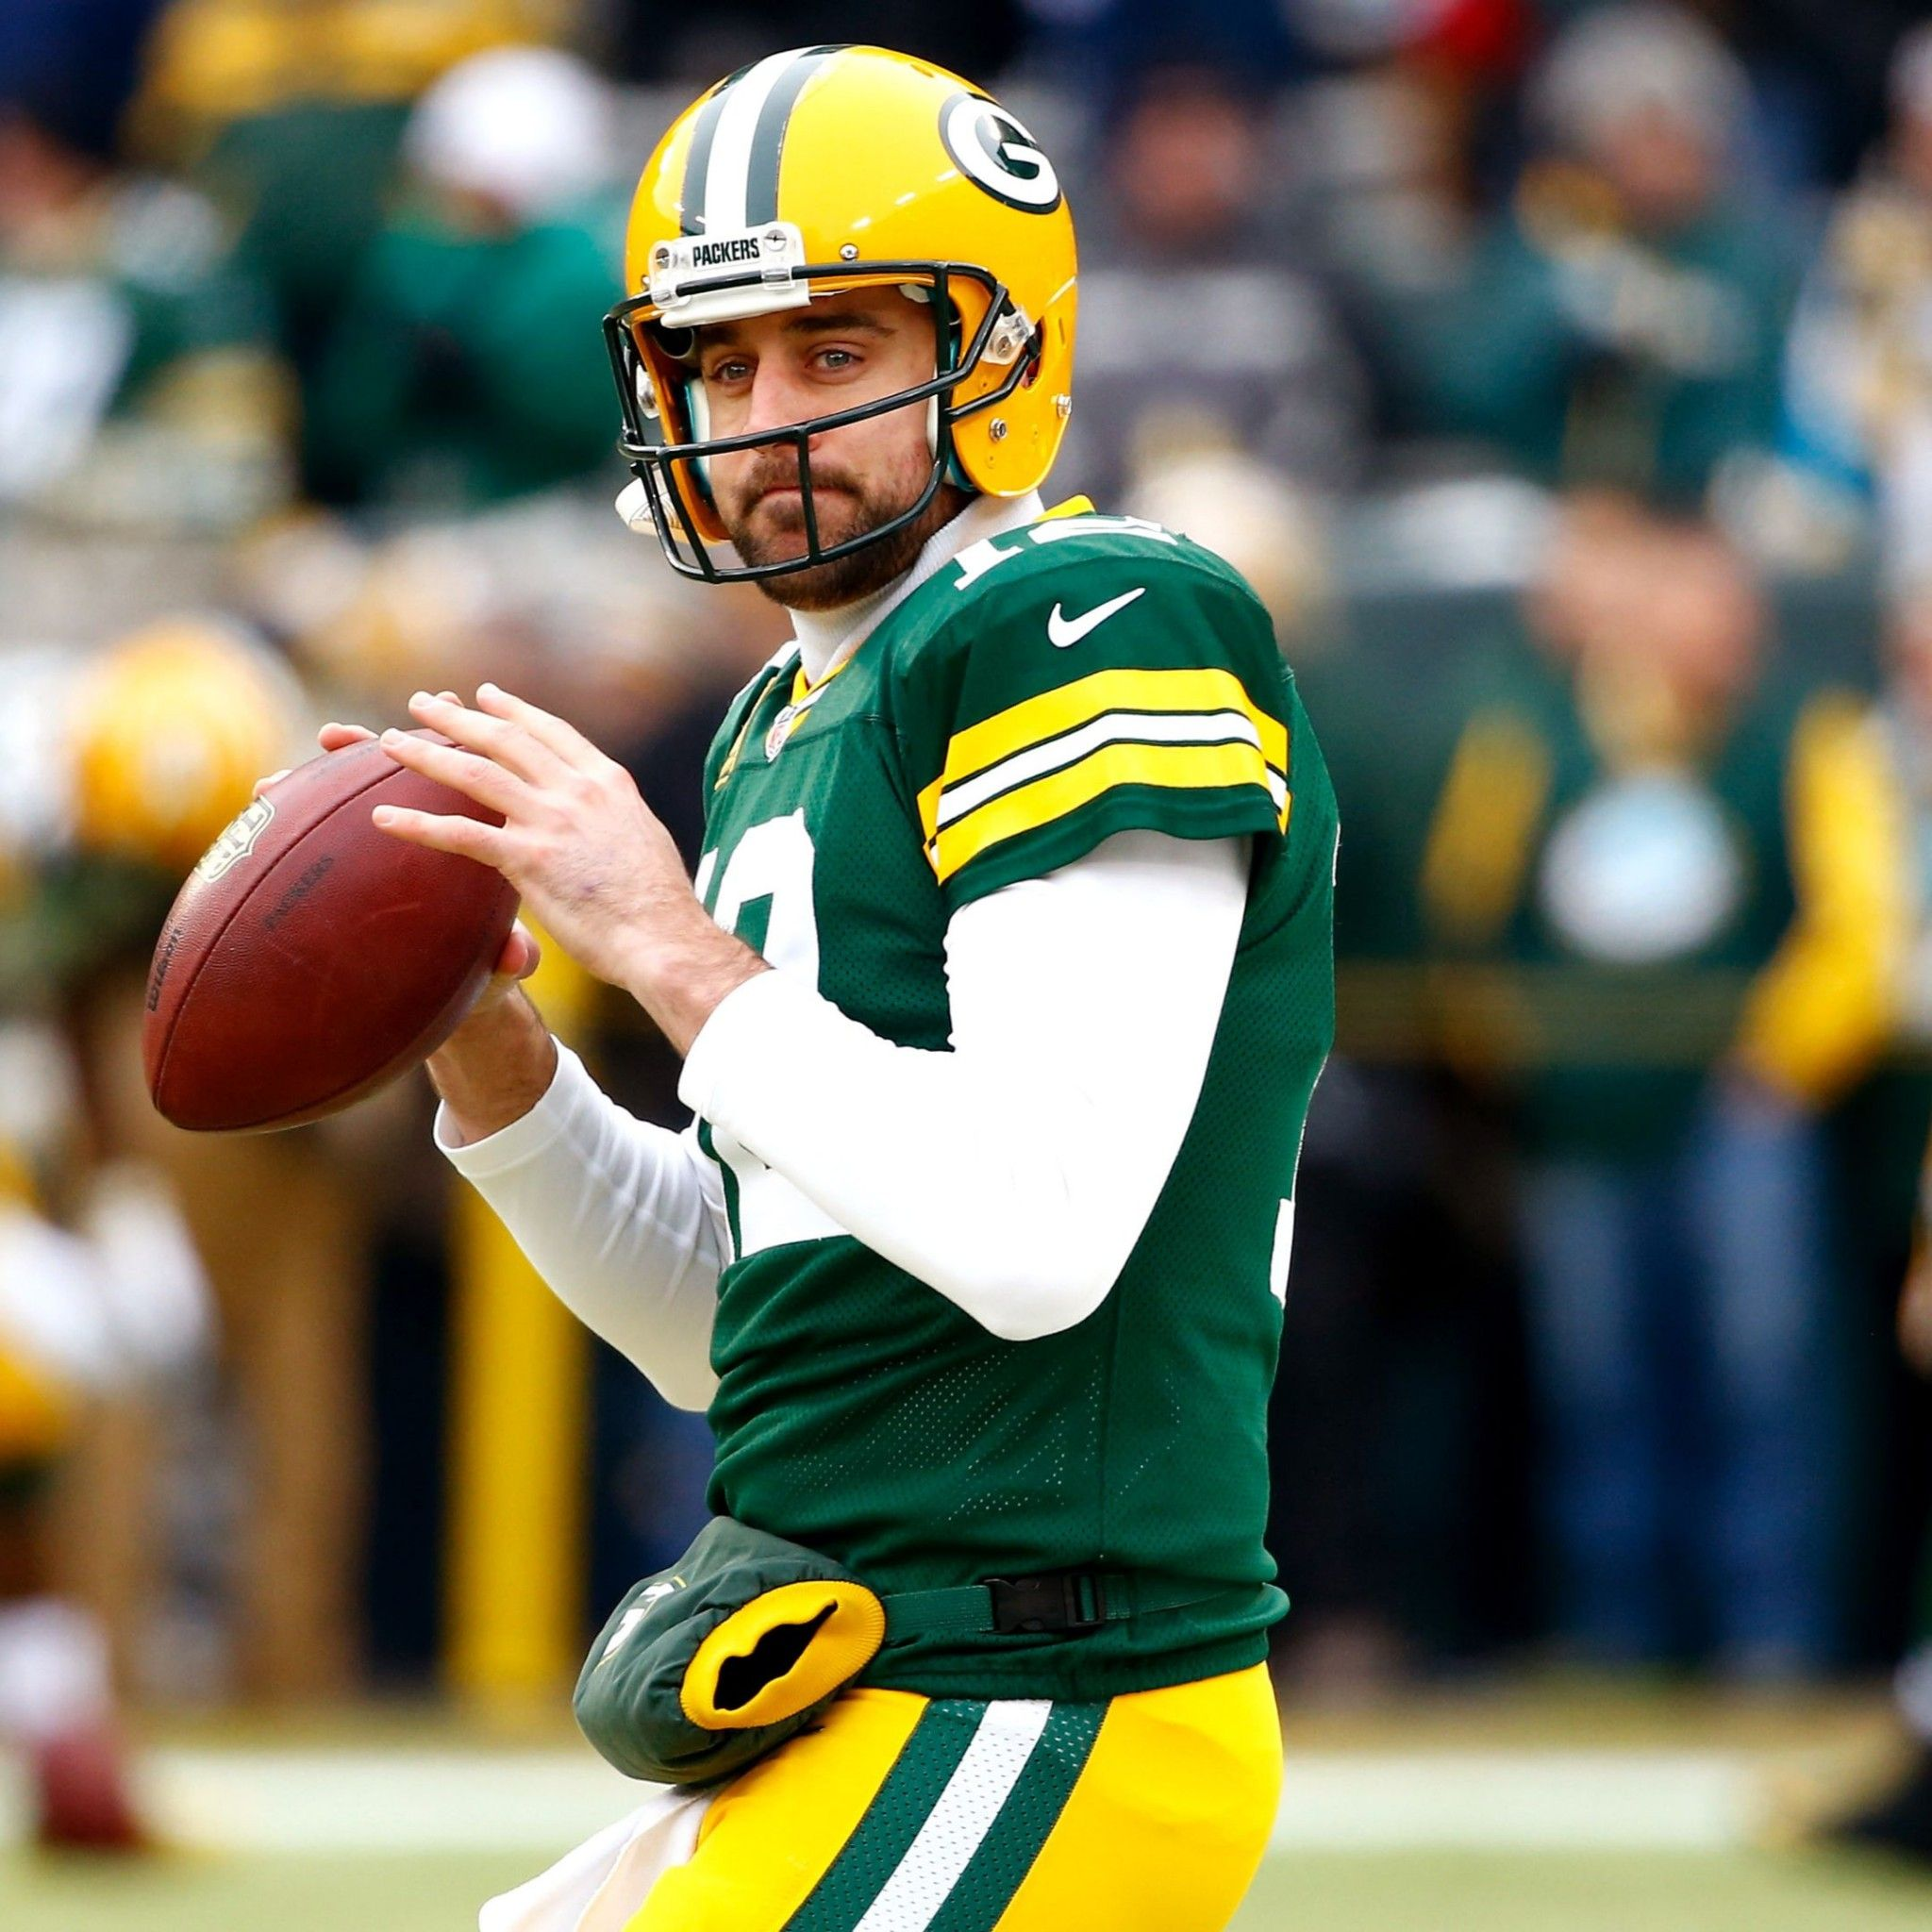 Aaron Rodgers Wallpaper Hd Wallpaper Green Bay Packers Clothing Aaron Rodgers Best Quarterback